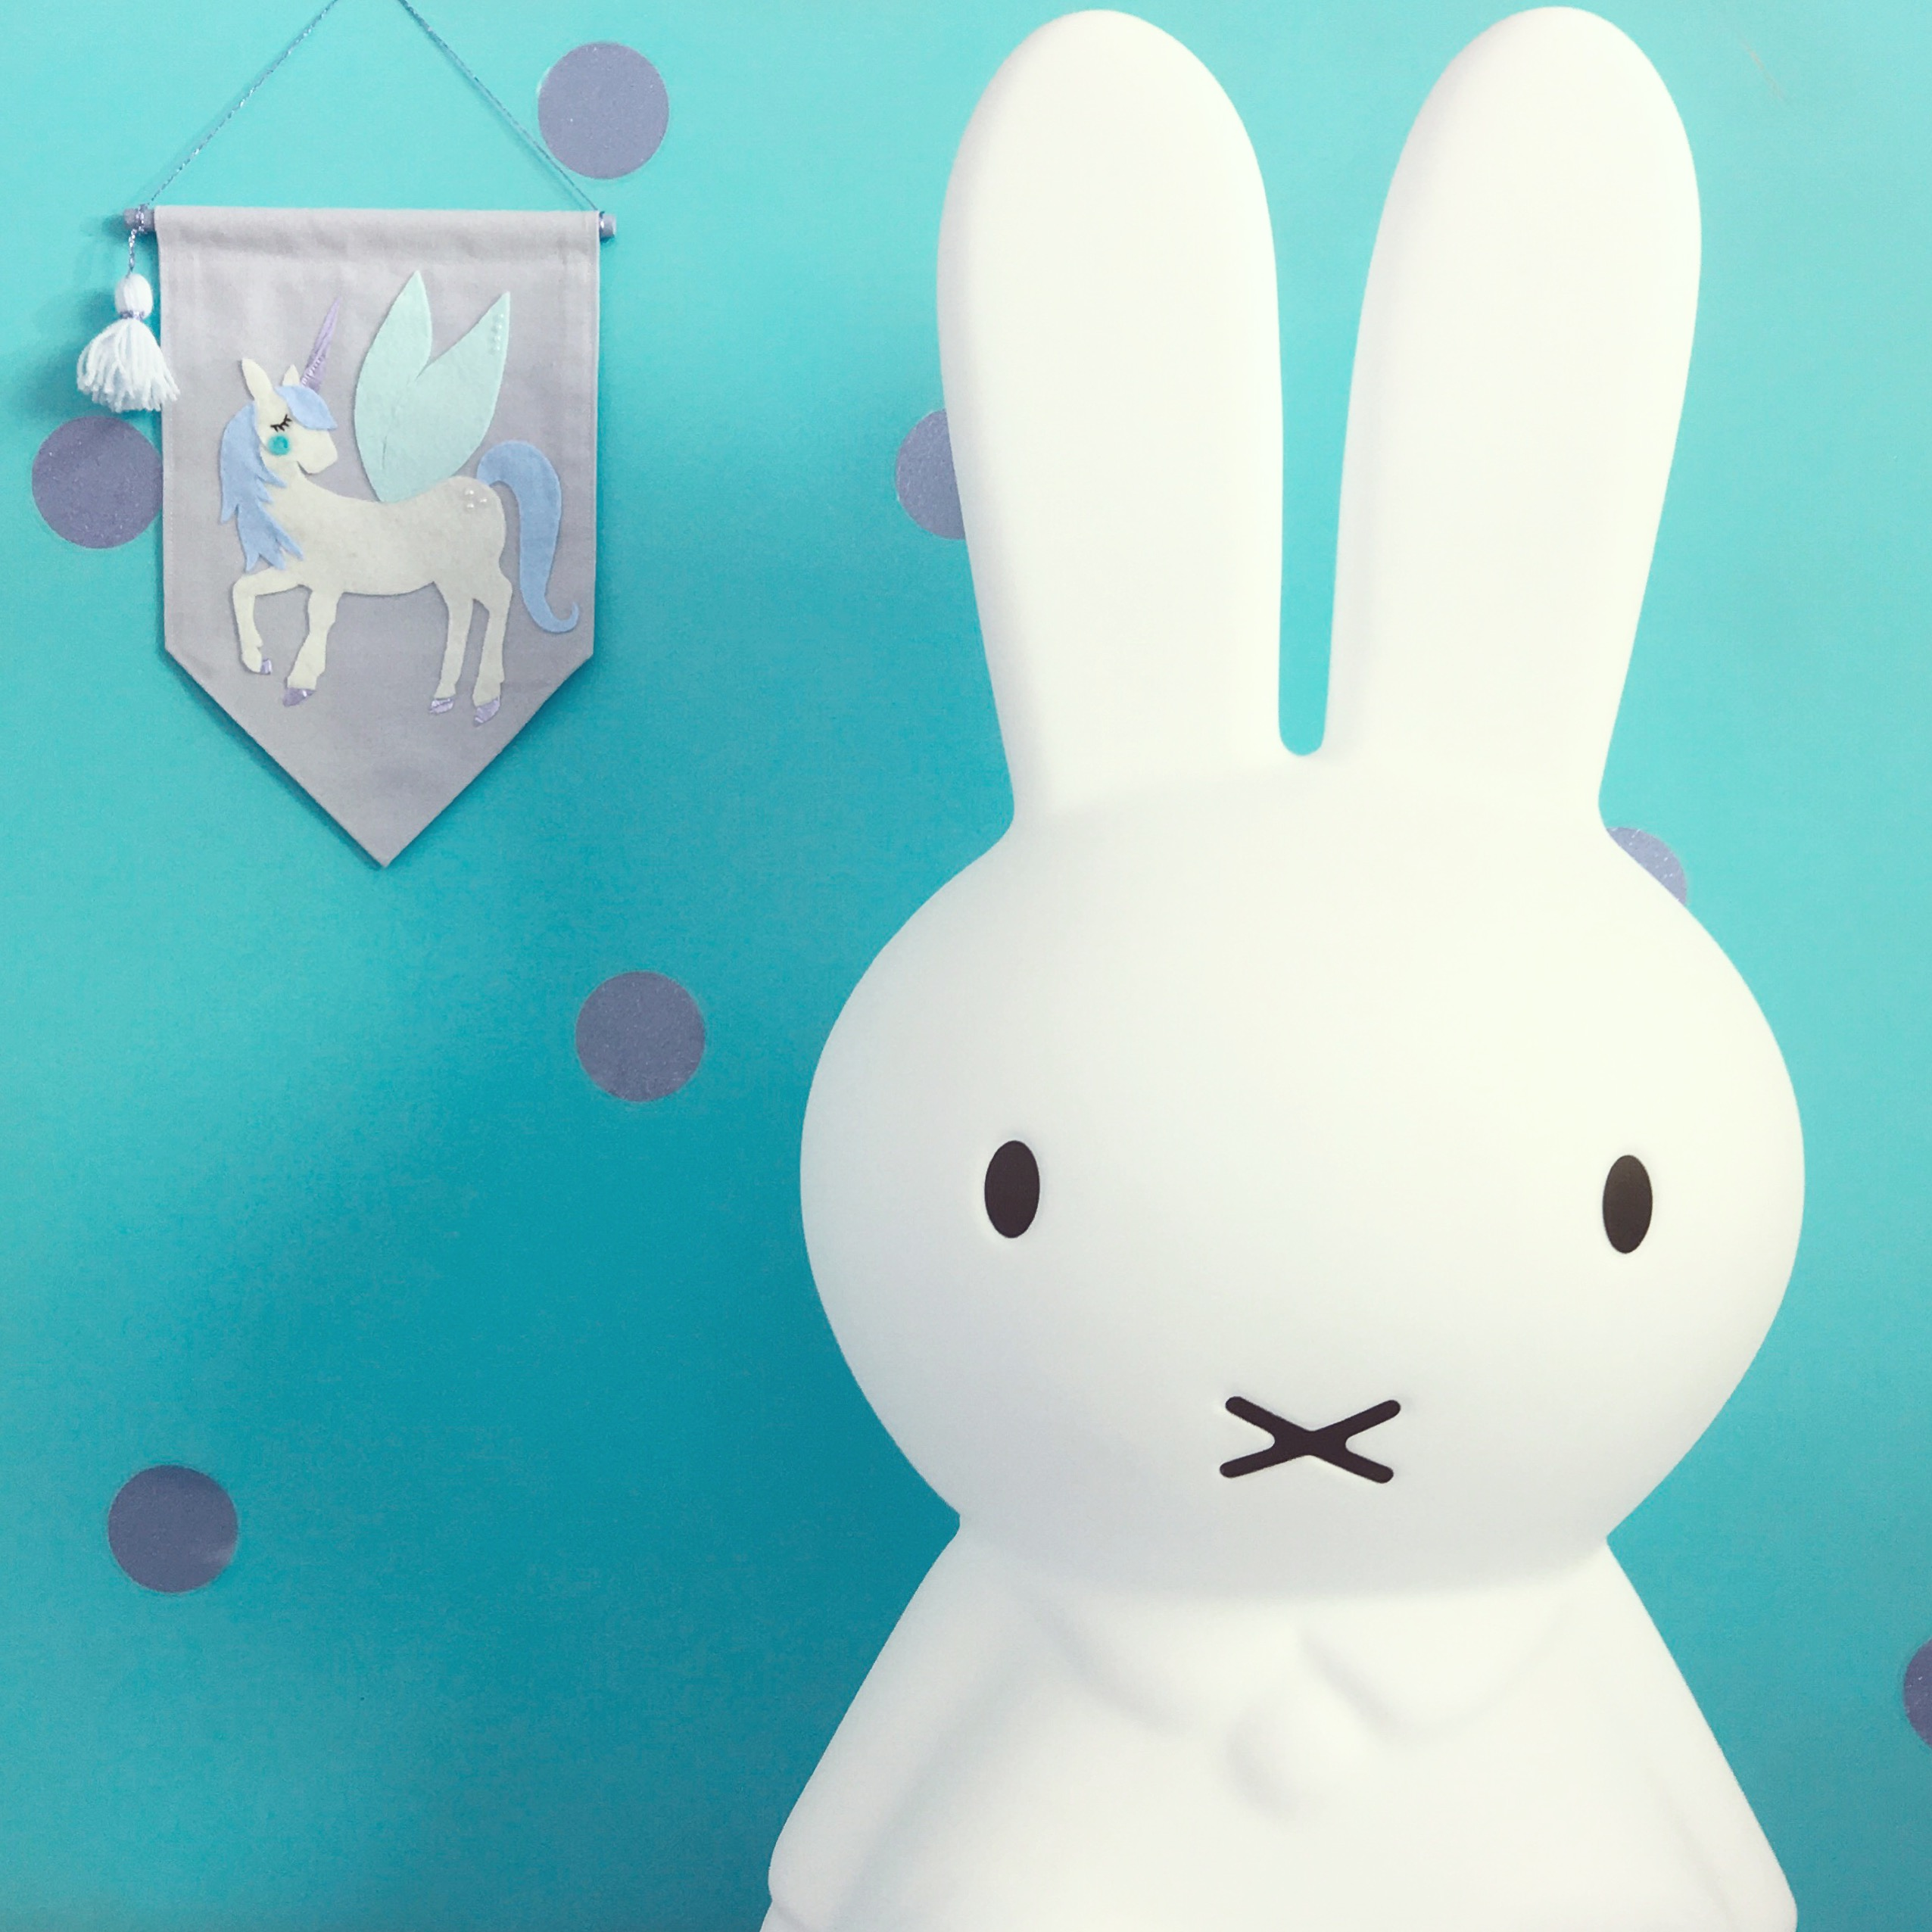 Miffy Crush – fave interior decor finds for kids